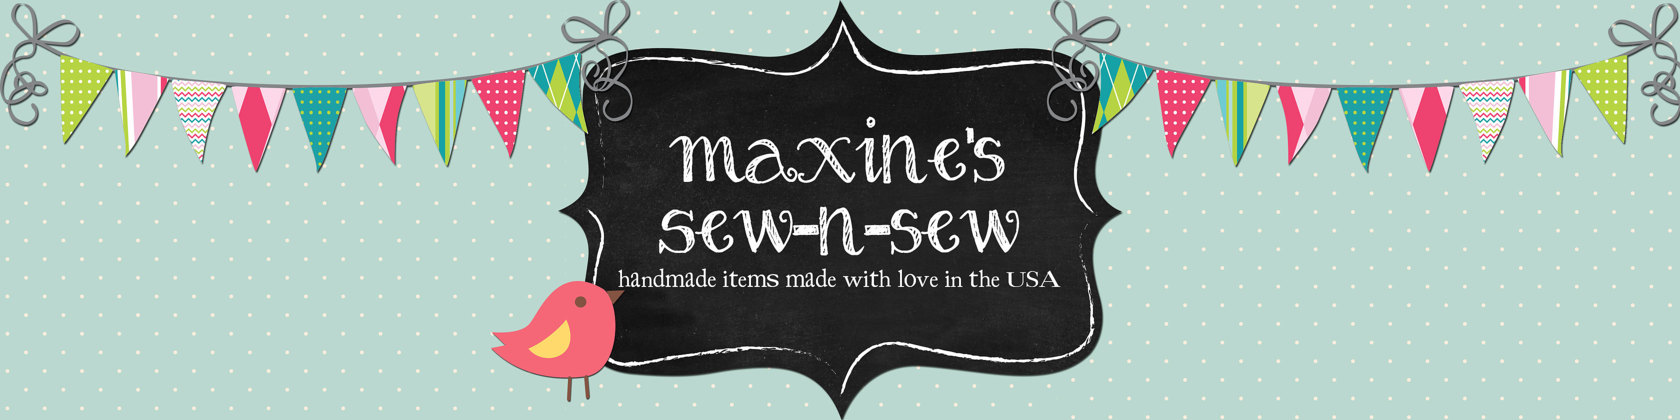 Maxine's Sew n' Sew by Maxinessewnsew on Etsy.